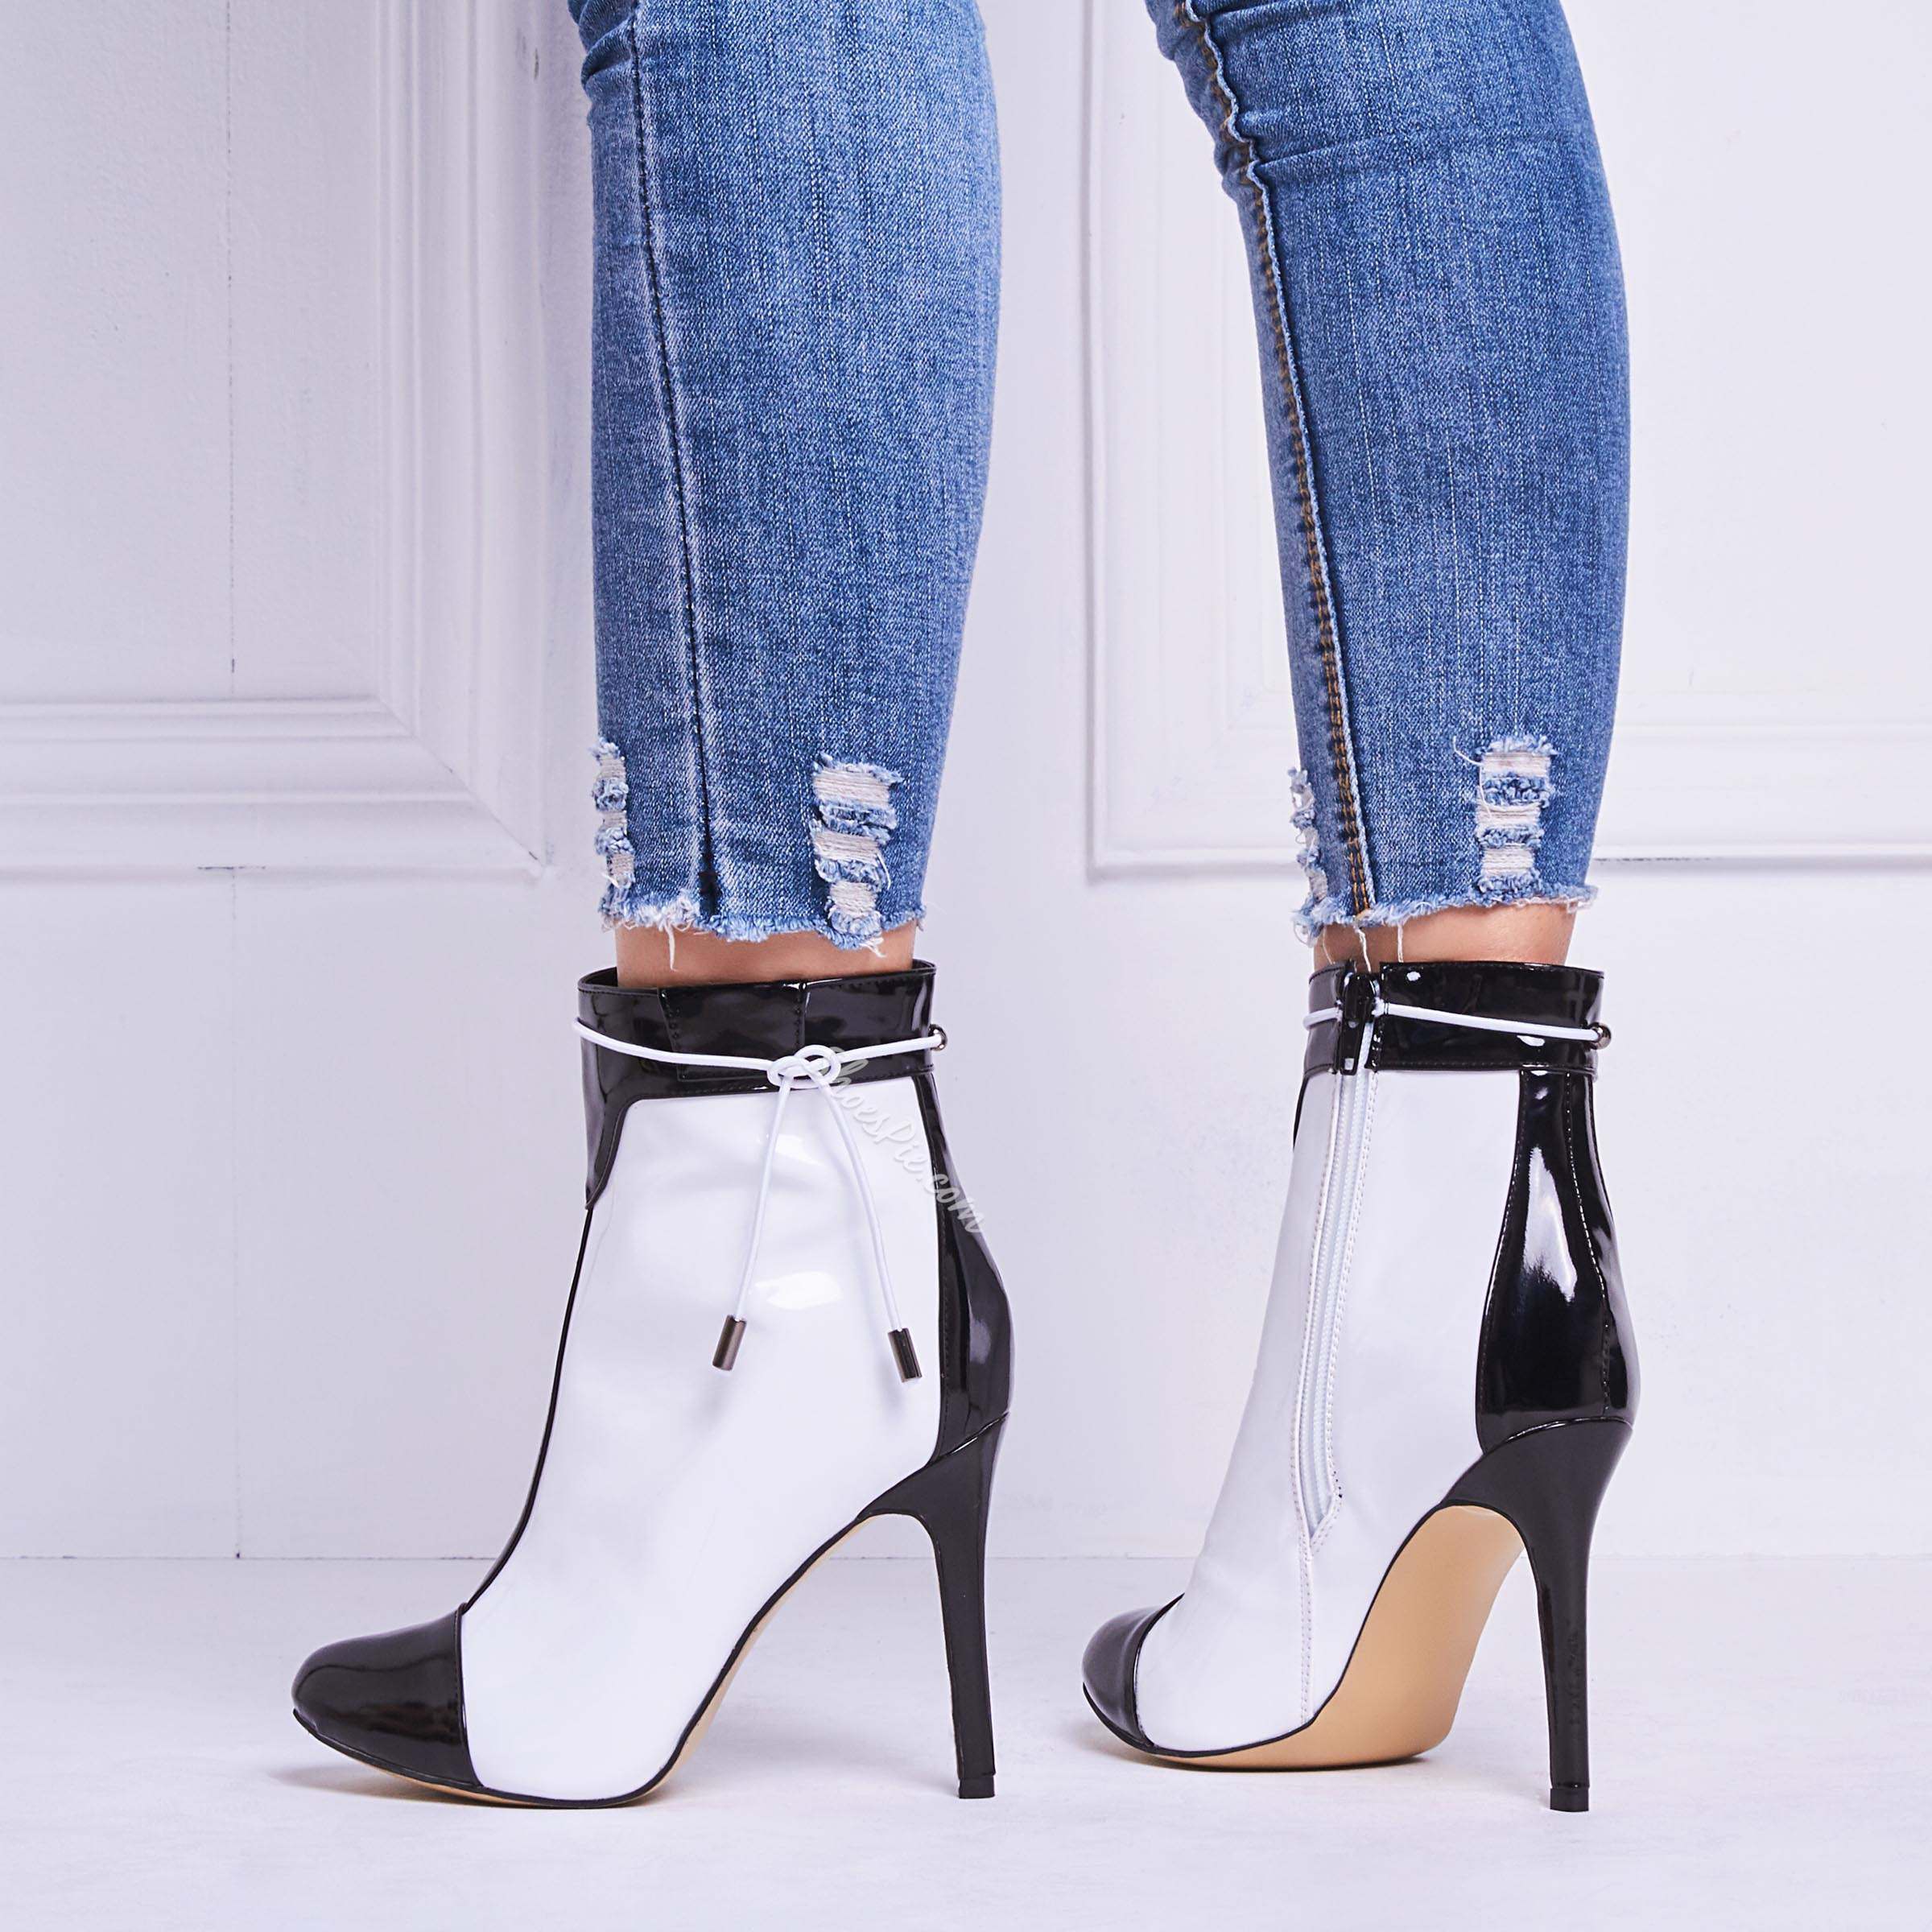 Shoespie Sexy Black & White High Heel Fashion Boots